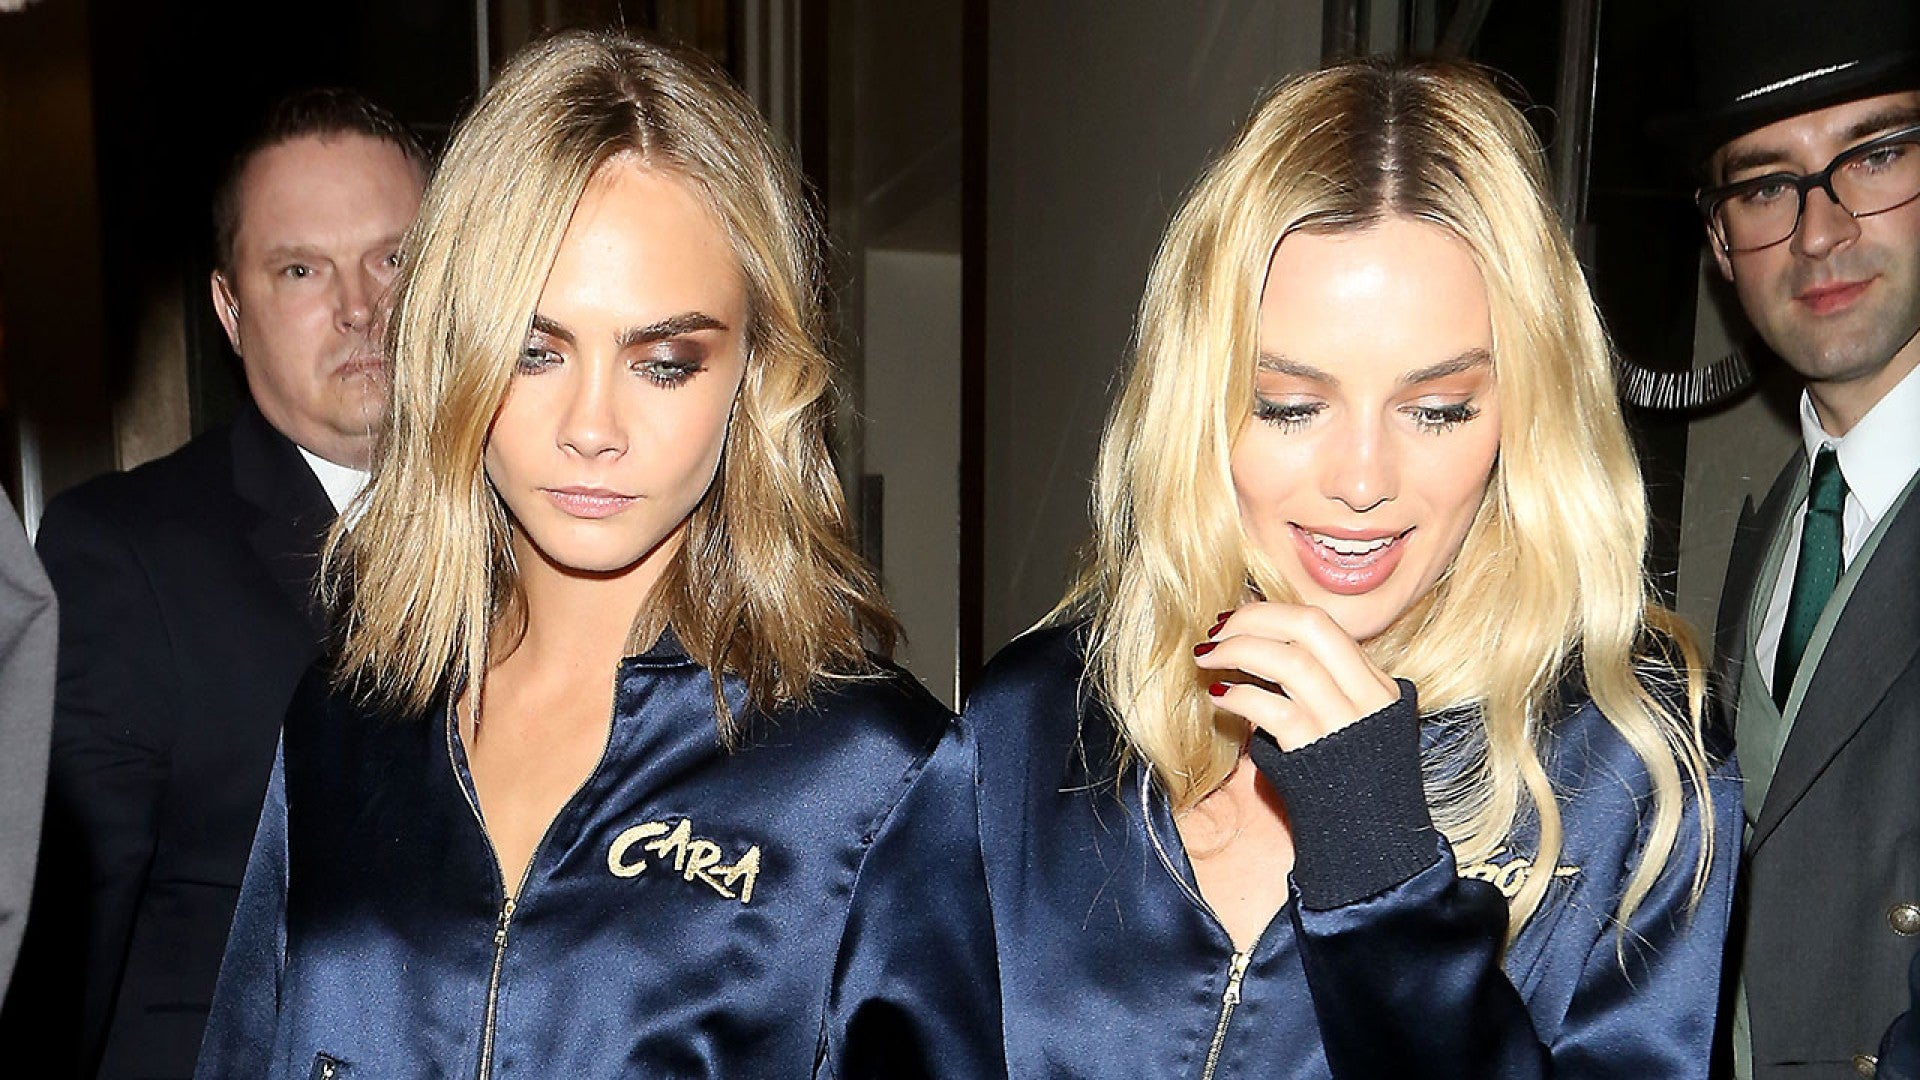 Margot Robbie And Cara Delevingne Rock Matching Track Suits To